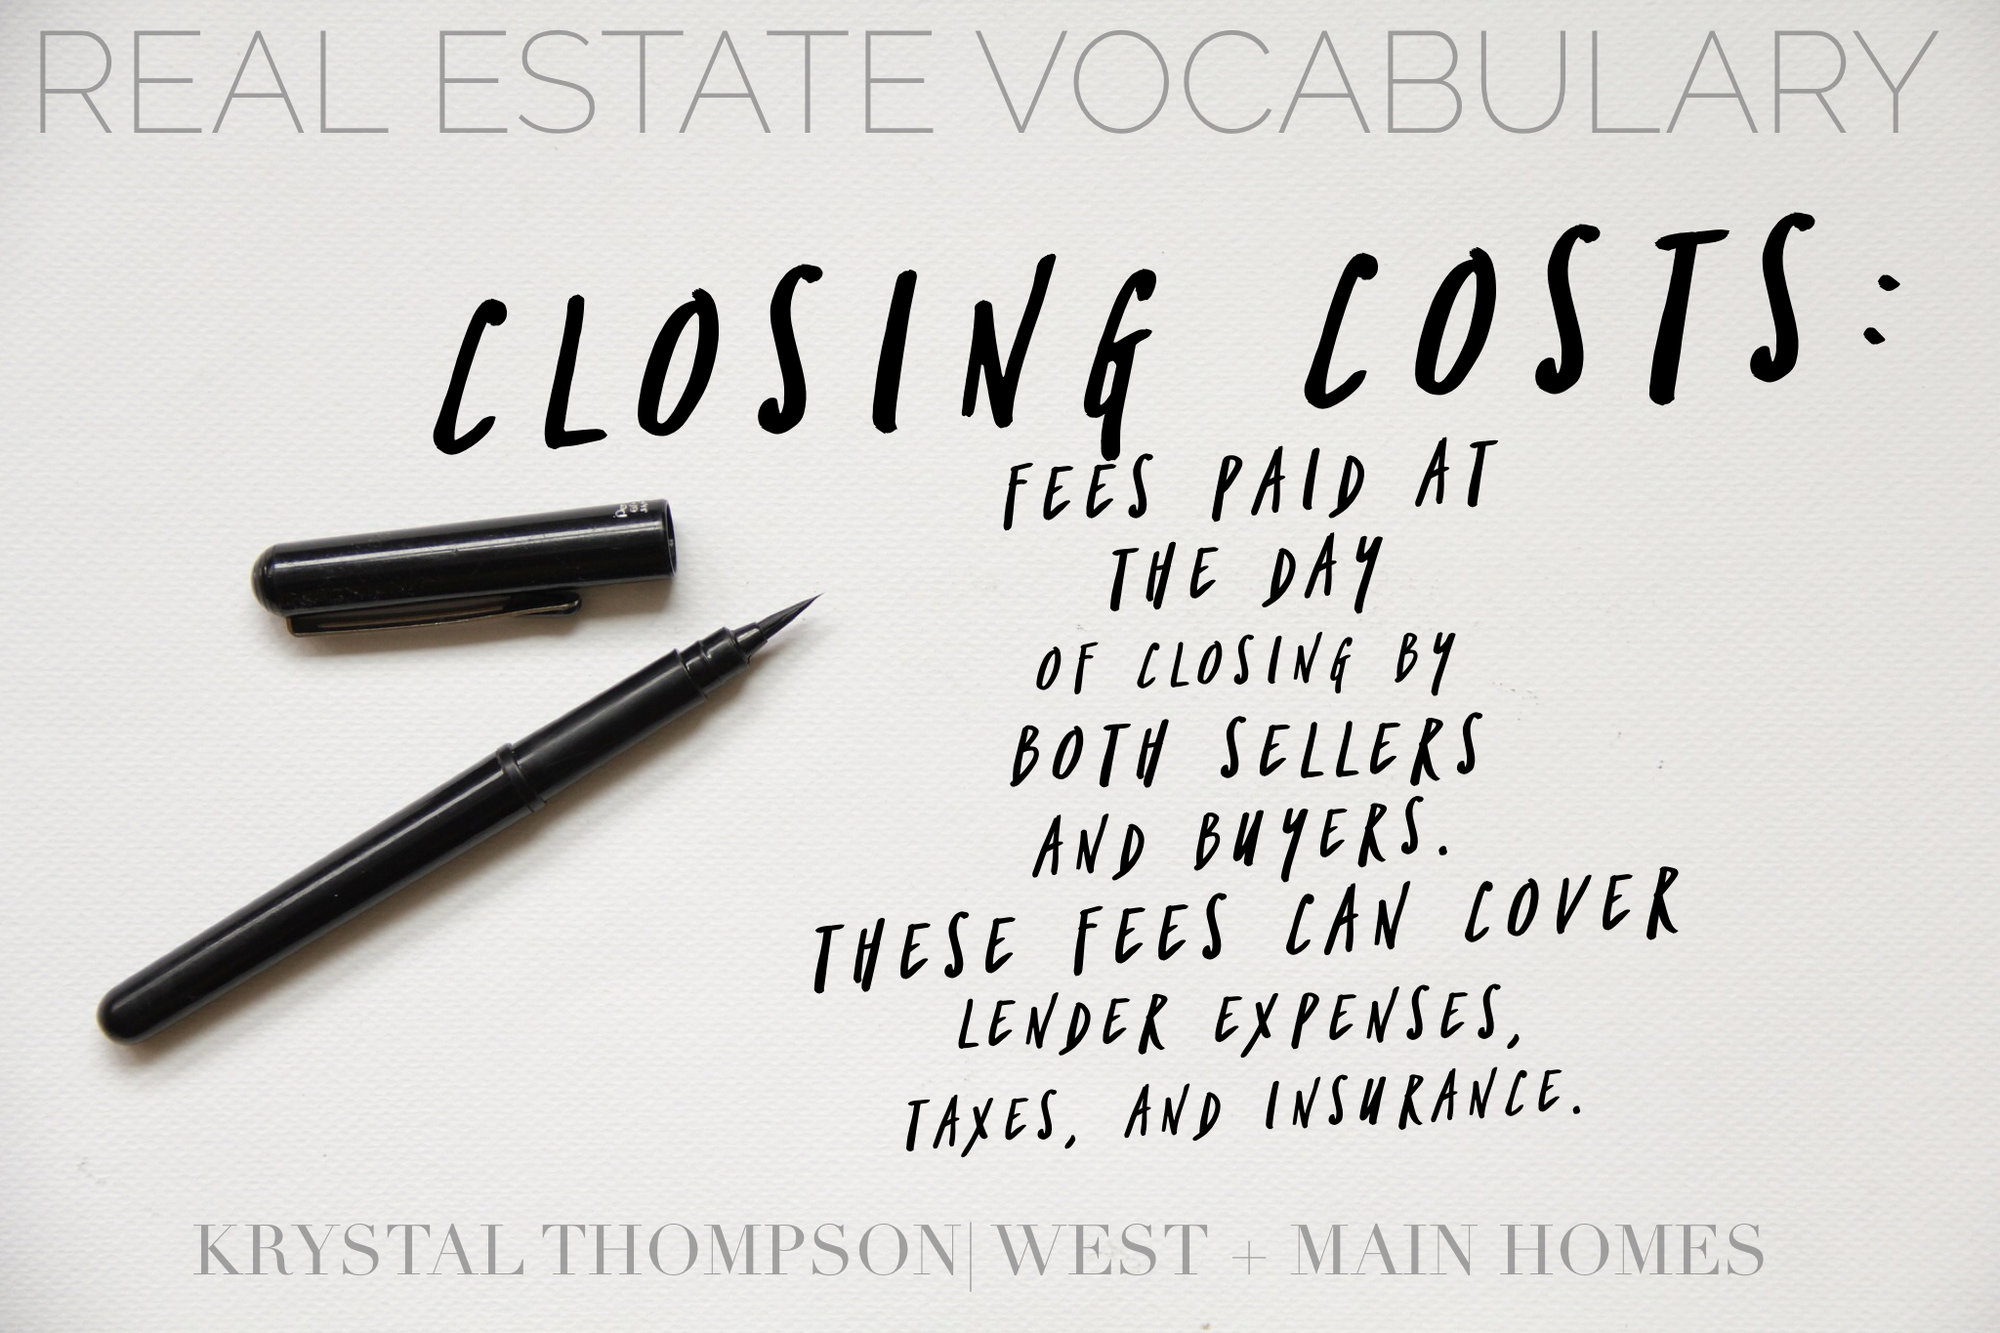 REAL Vocabulary: Real Estate and Mortgage Terms Explained | Page #4